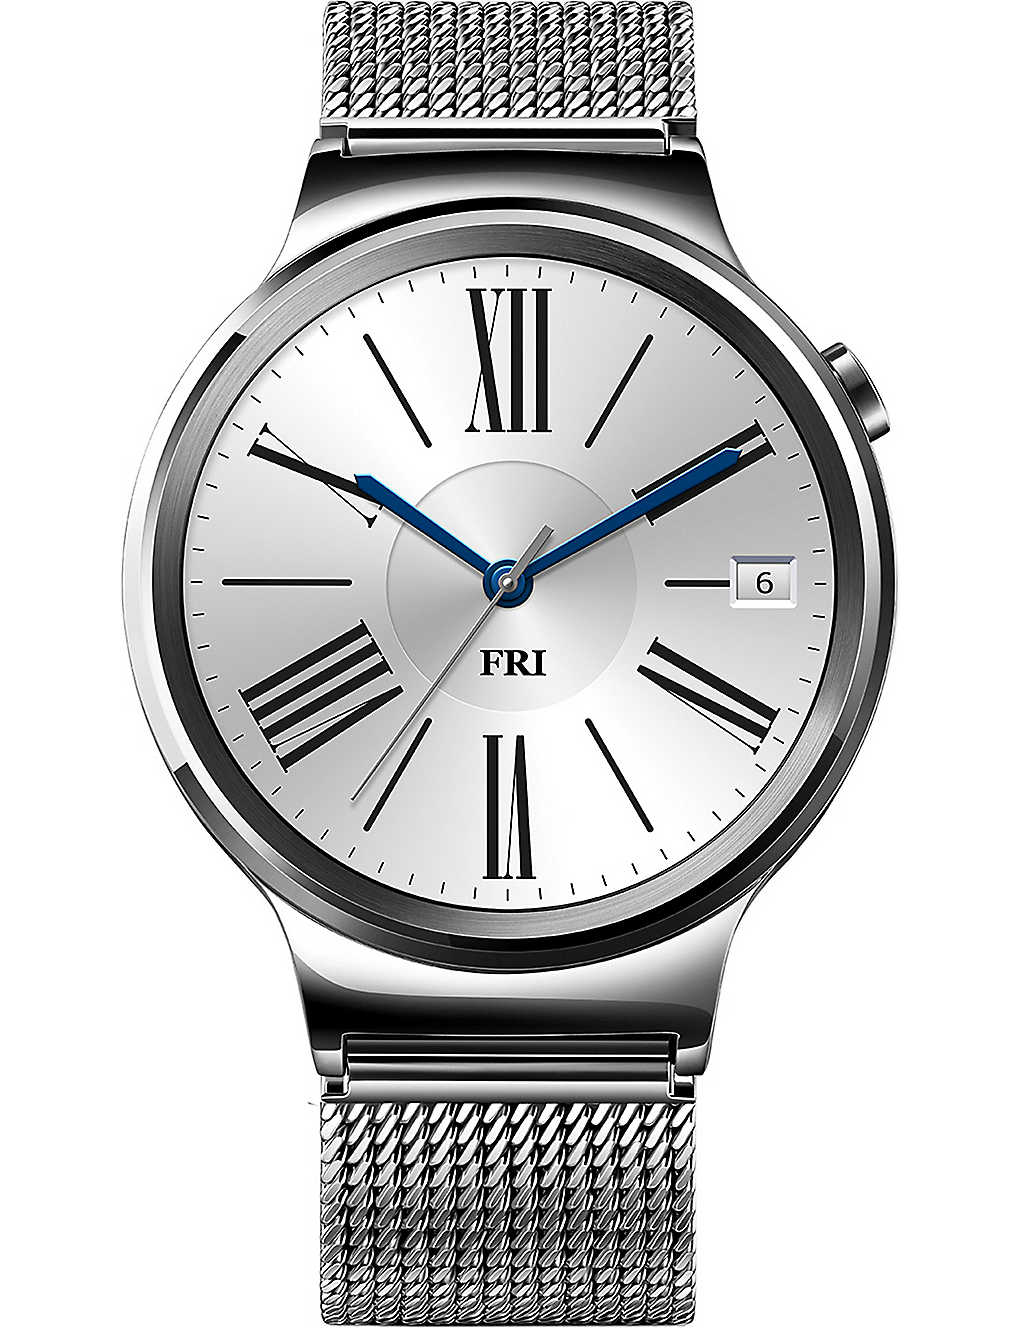 Huawei Classic Mesh Strap Smart Watch Stainless Steel Band Us Warranty No Recent Searches